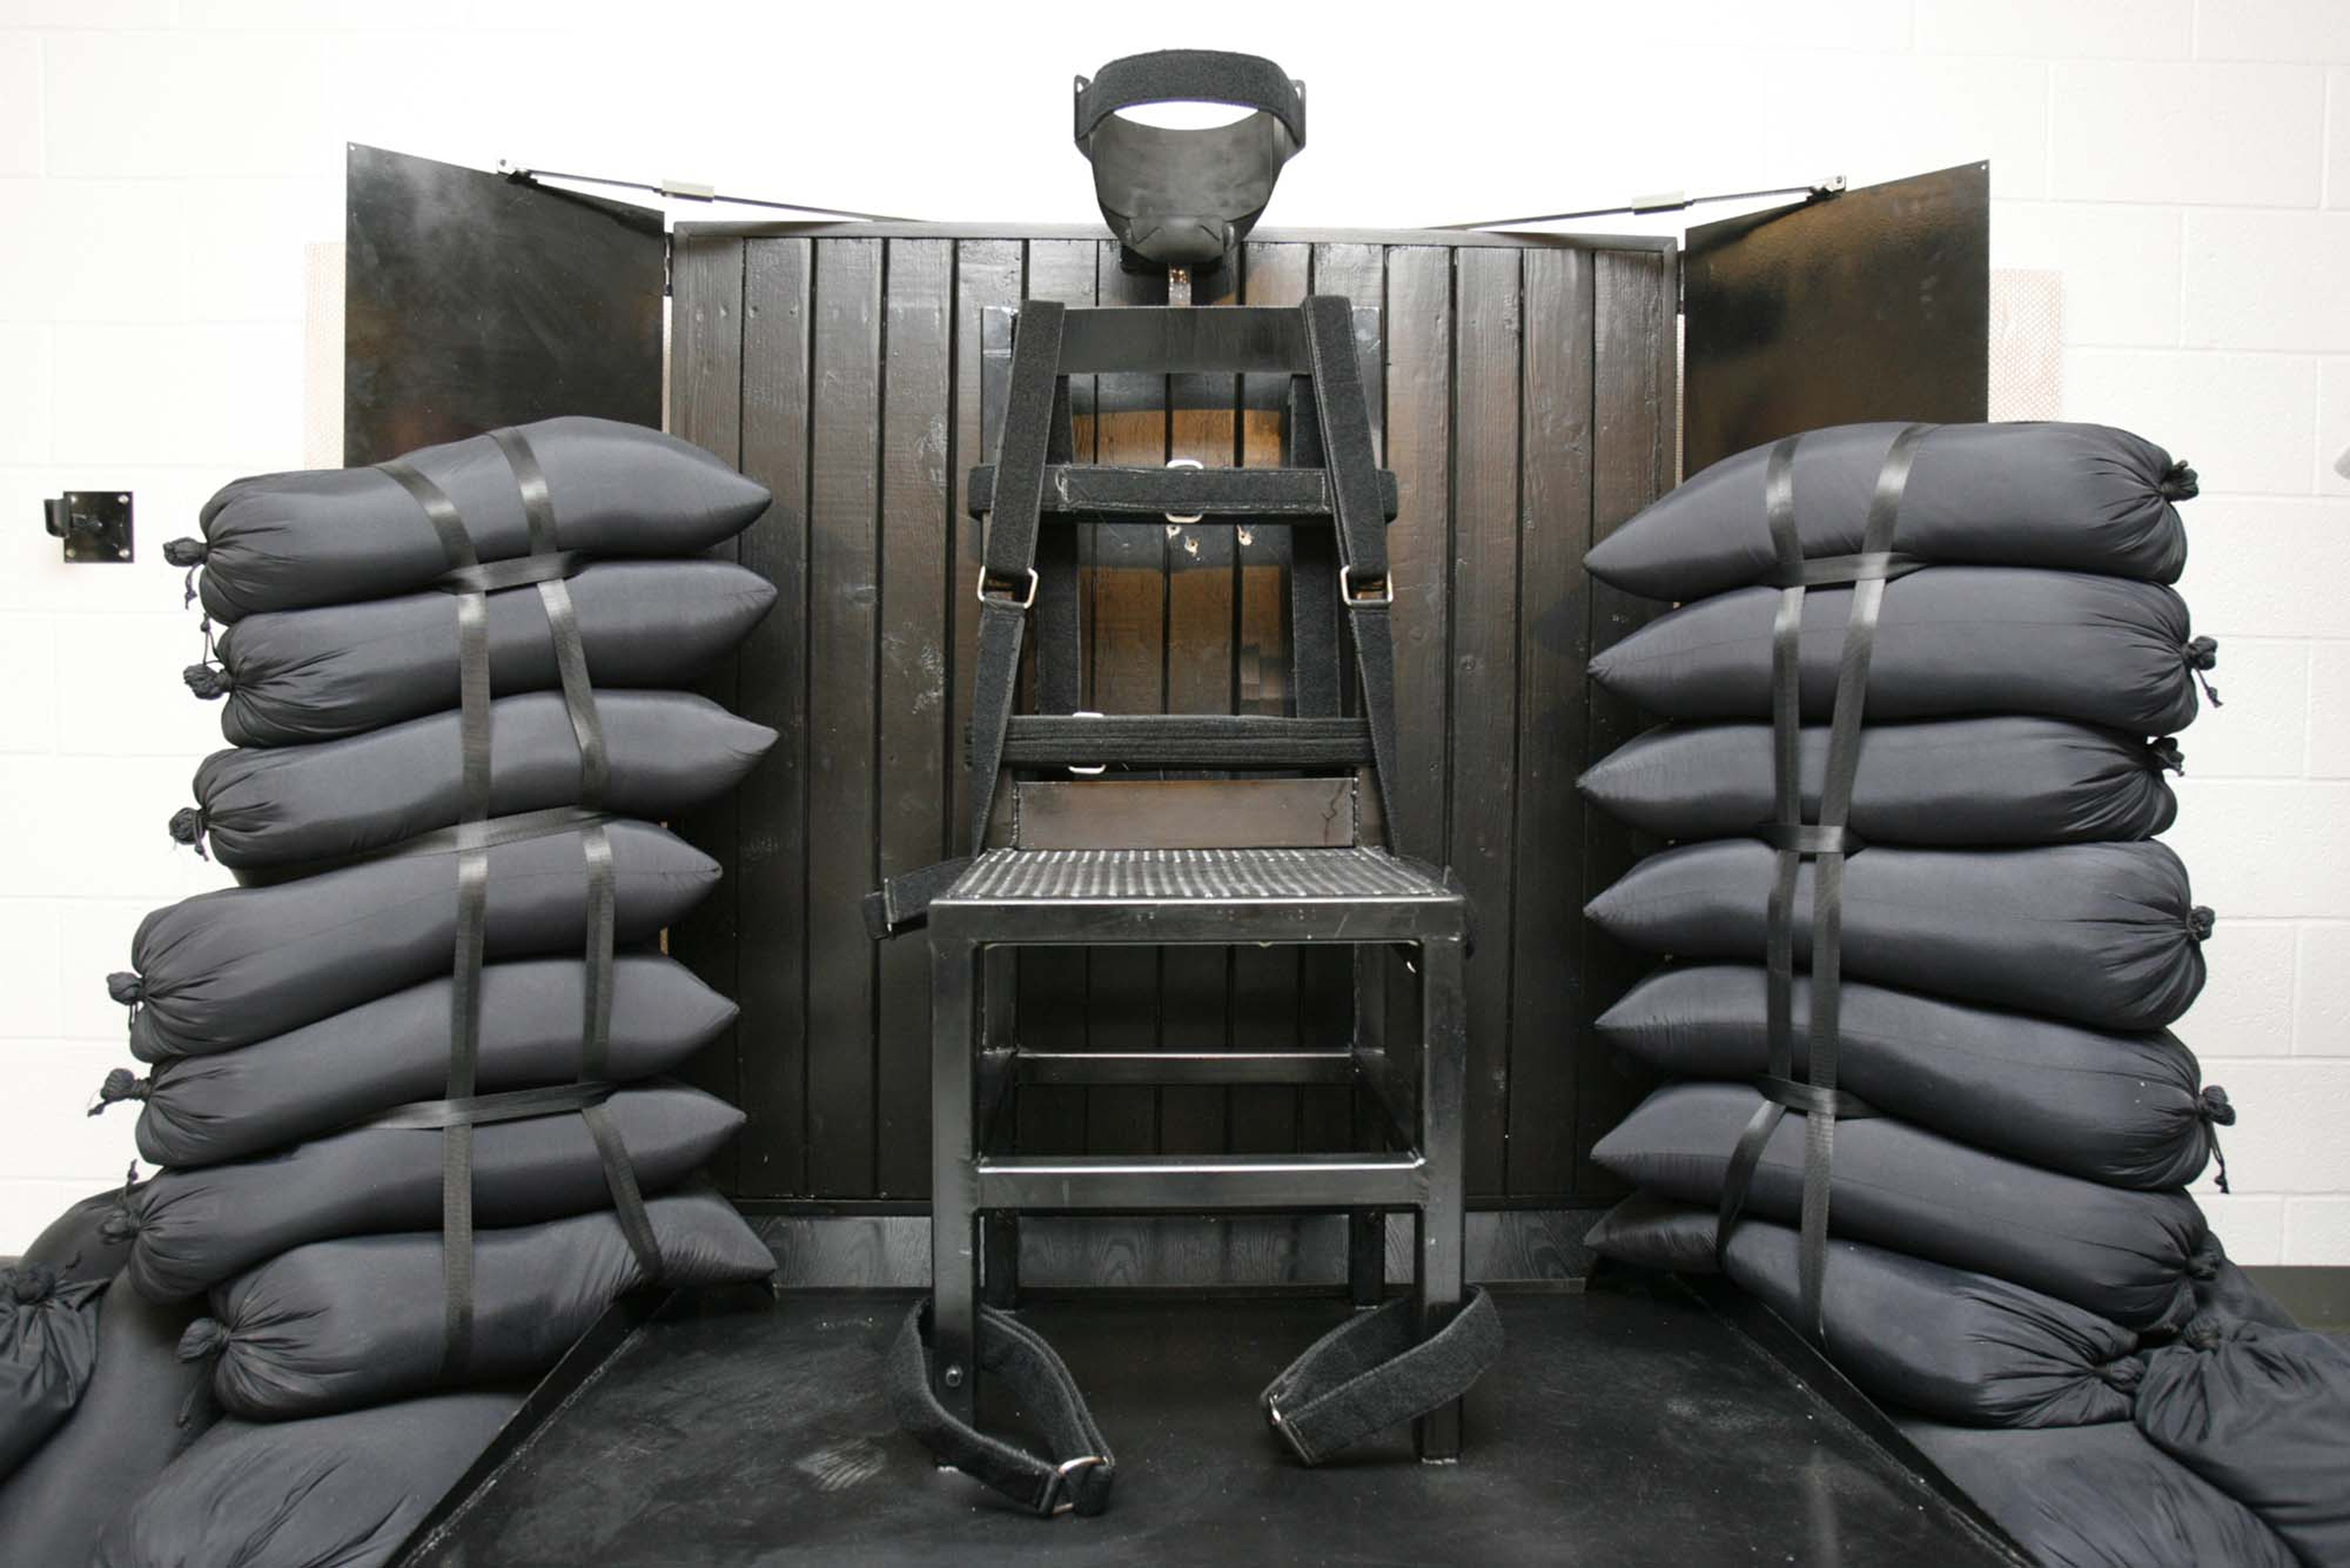 This 2010 file photo shows the firing squad execution chamber at the Utah State Prison, in Draper, Utah.